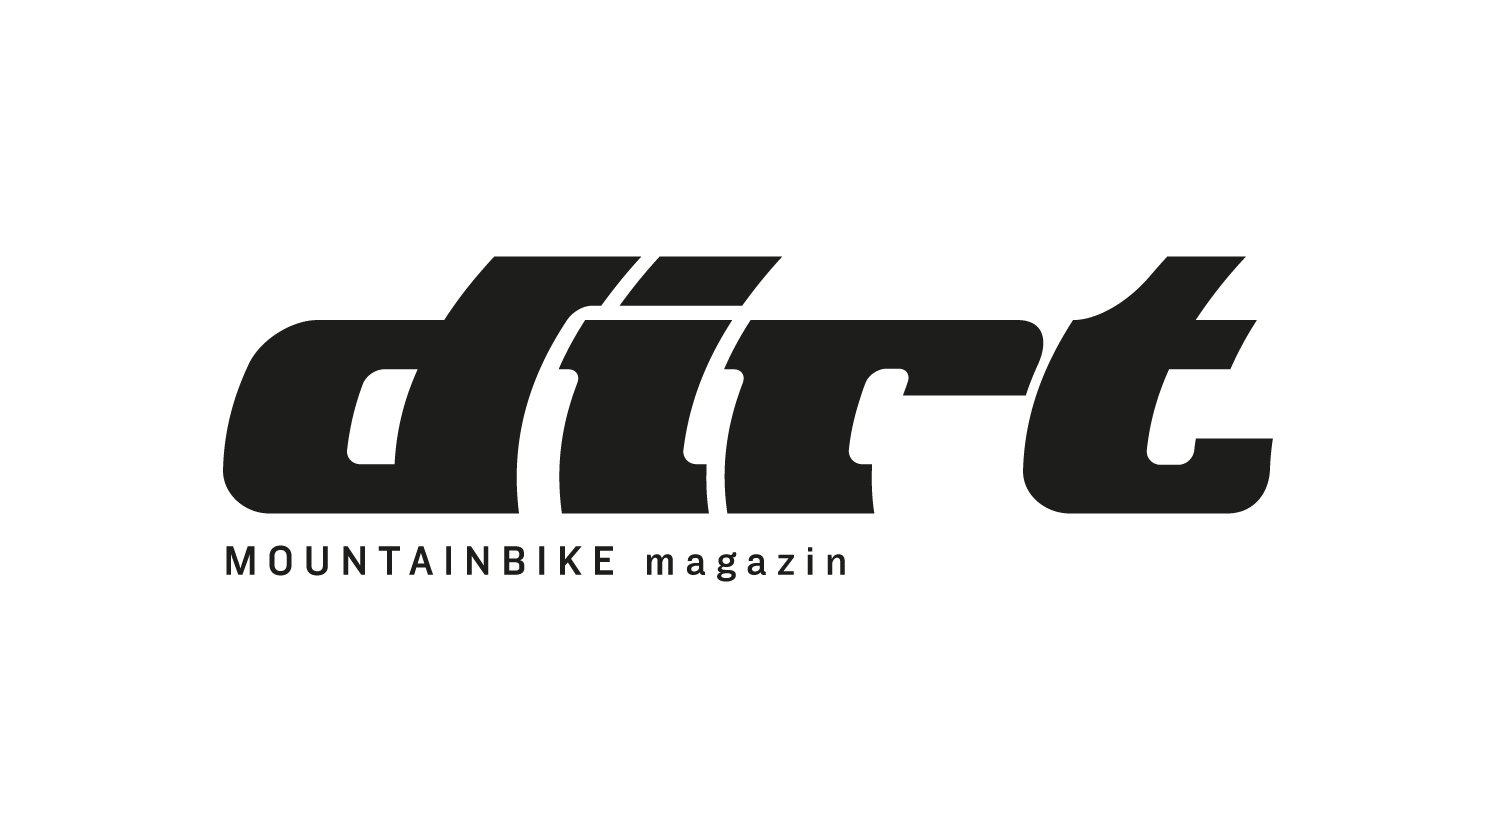 https://dirtmountainbike.de/featured/die-mountainbike-reifen-von-vee-tire-co-im-test